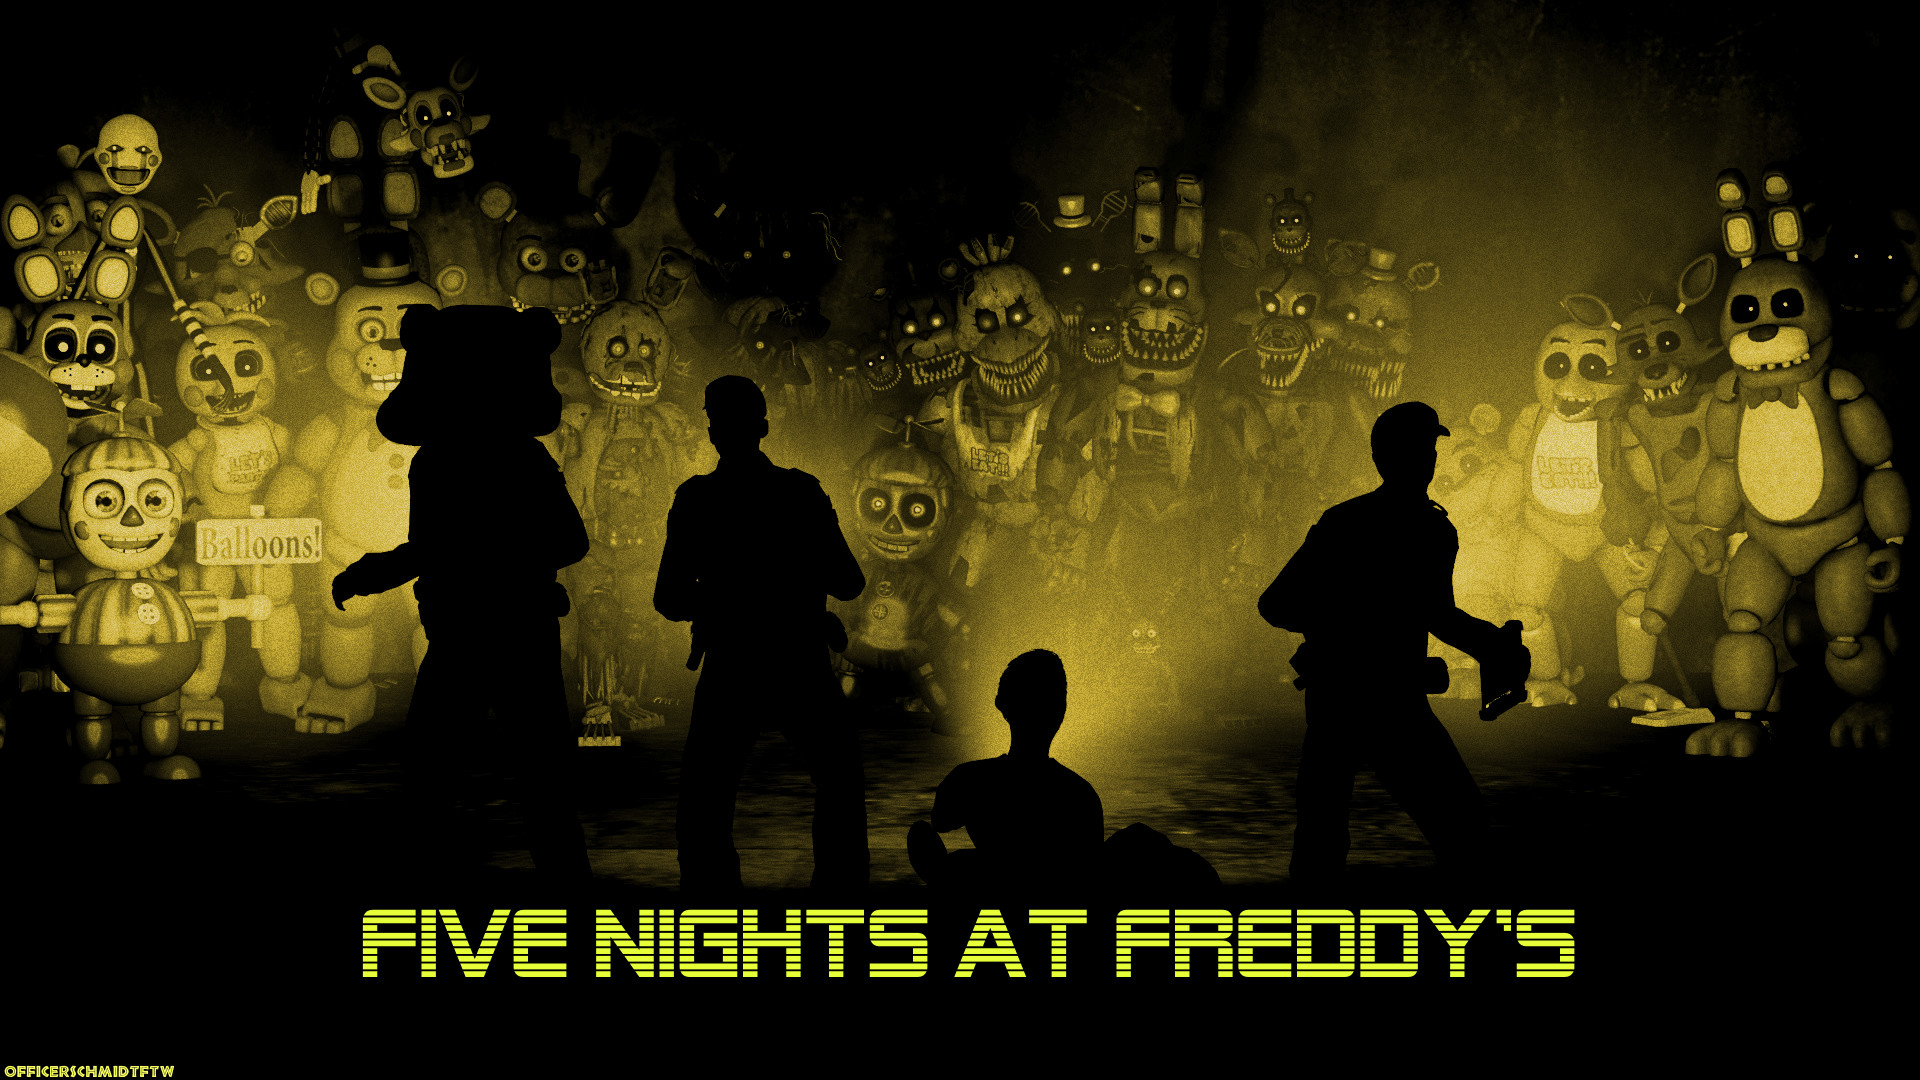 1920x1080 ... OfficerSchmidtFTW Five Nights at Freddy's (SFM) by OfficerSchmidtFTW